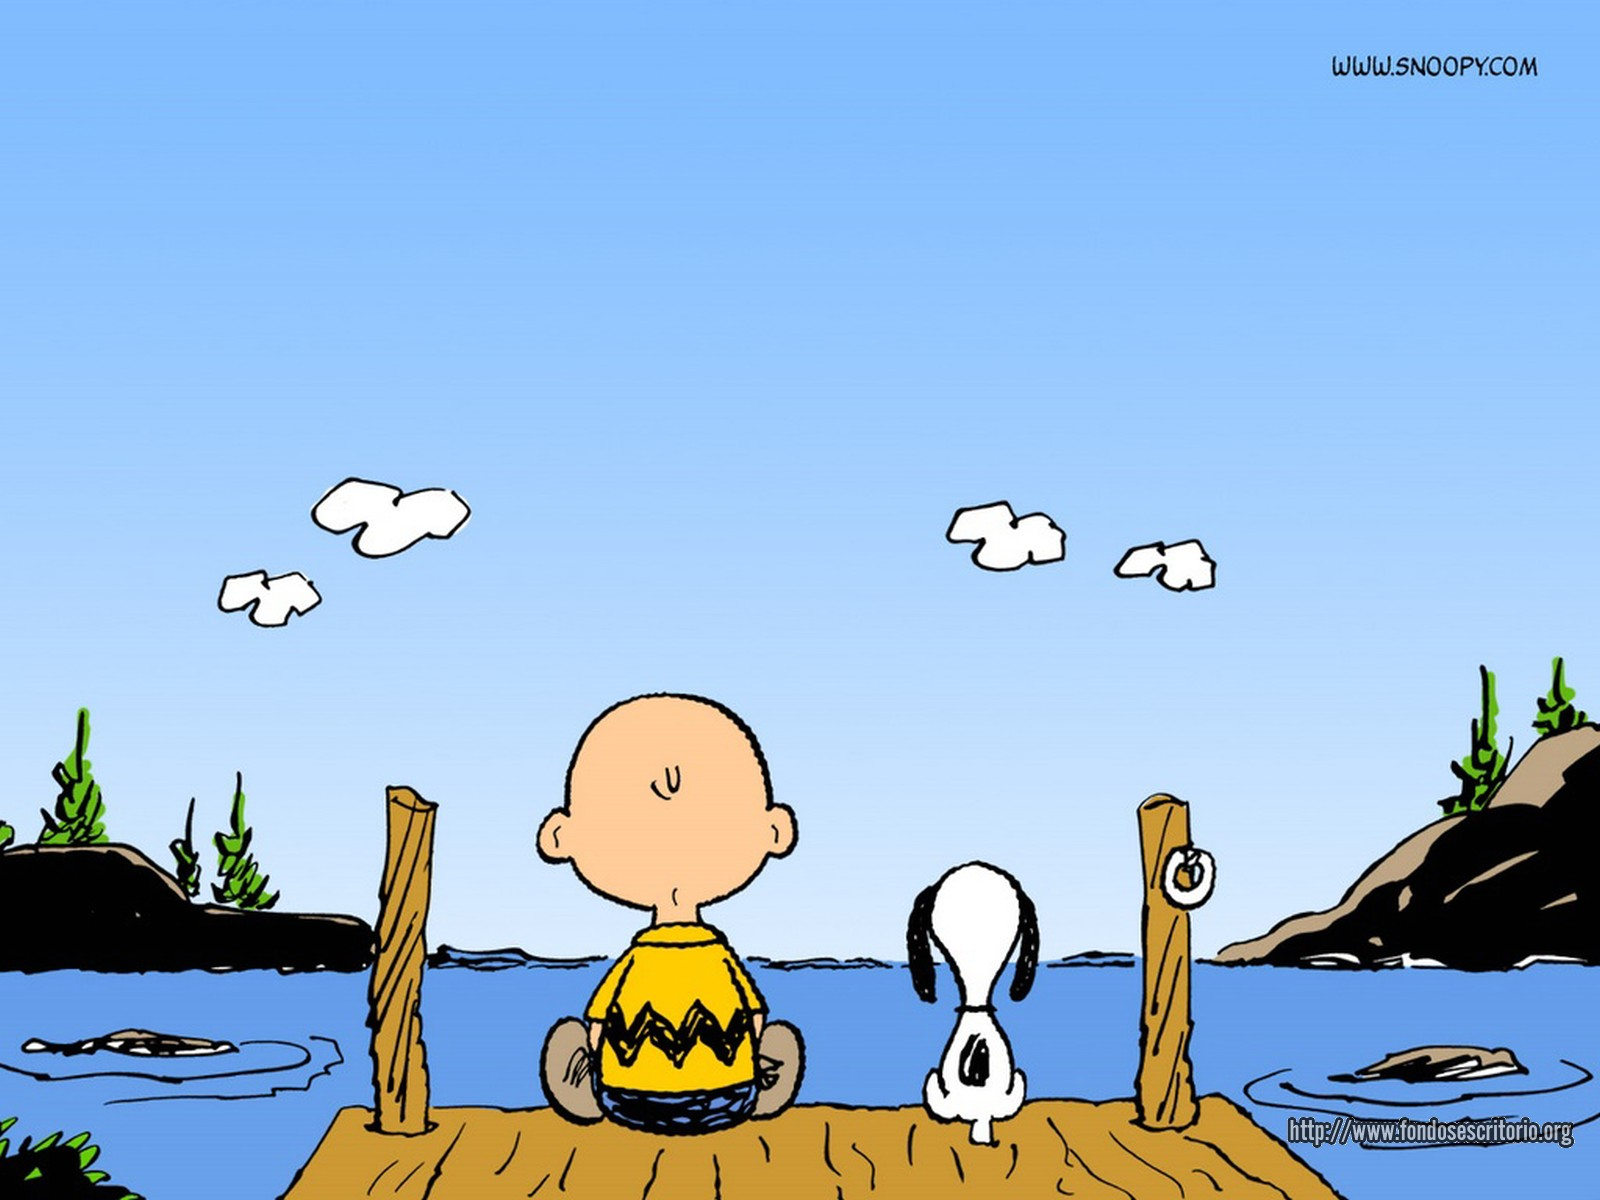 Snoopy peanuts desktop wallpaper Picture Wallpaper Collections 1600x1200